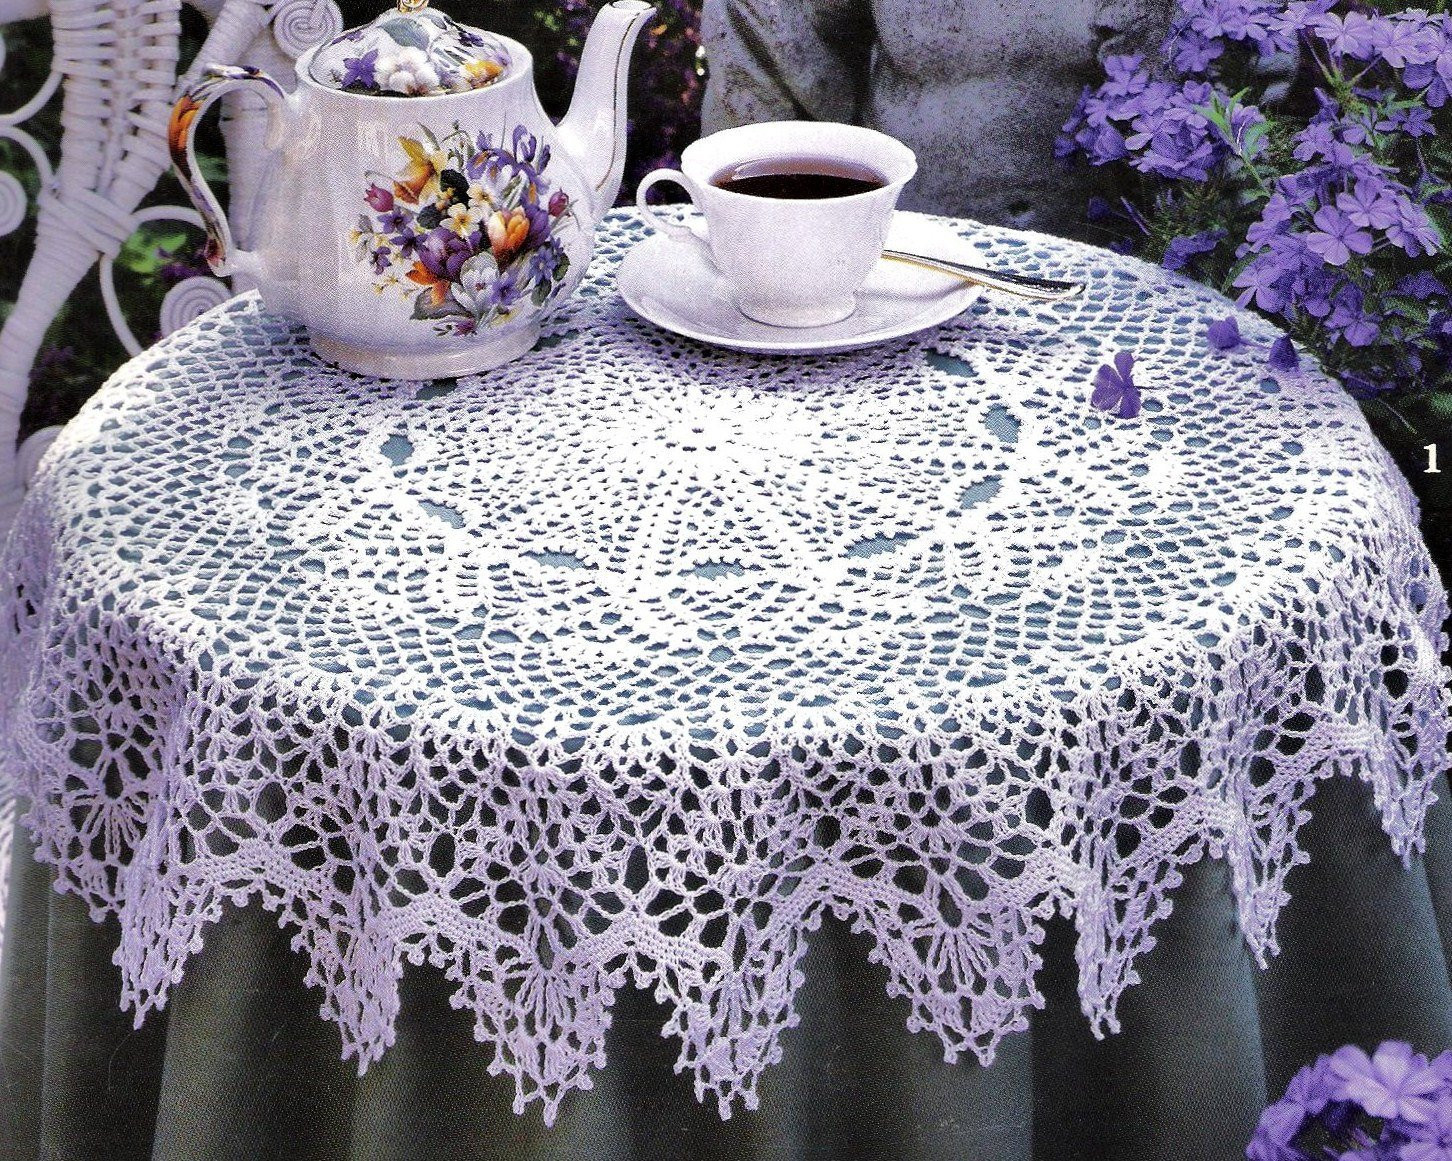 Free Crochet Tablecloth Patterns Inspirational Round Crochet Tablecloth Patterns Booklet by Stitchyspot Of Contemporary 40 Pics Free Crochet Tablecloth Patterns